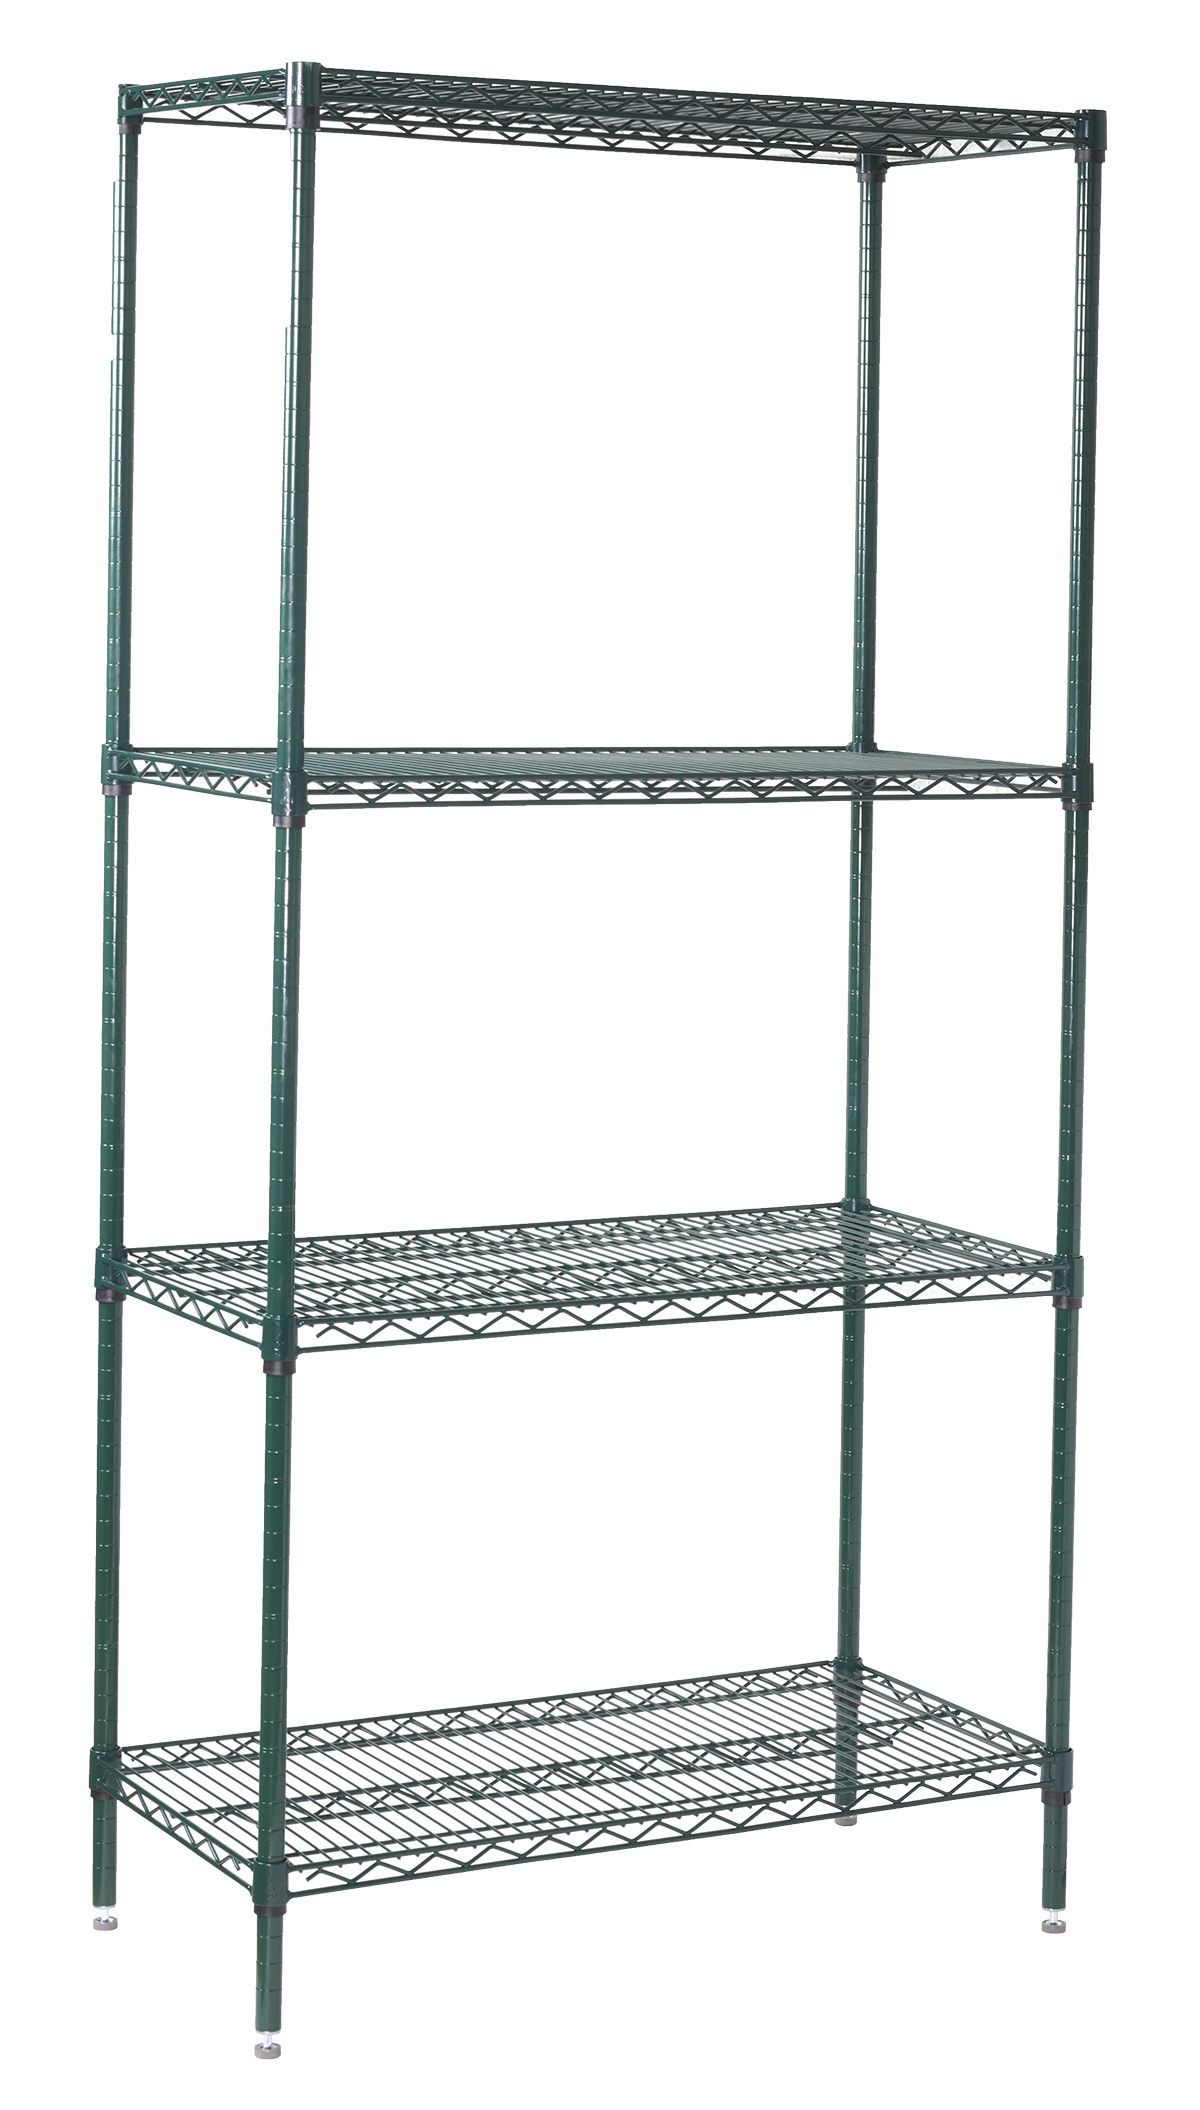 """Winco VEXS-2436 Epoxy Coated 4-Tier Wire Shelving Set, 24"""" x 36"""" x 72"""""""